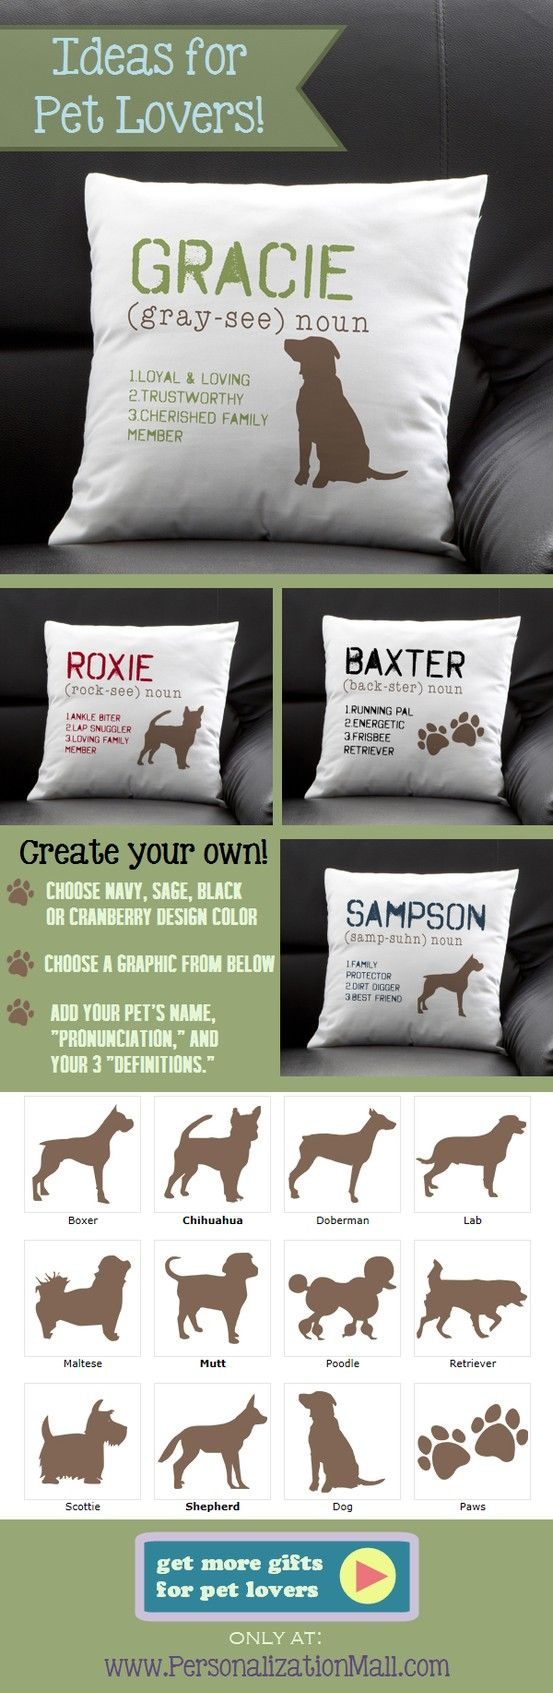 "This pillow is so cute! I love how you can personalize it with your own dog's name ""pronunciation"" and ""definition"" so you can fit it with your dog's personality perfectly!"